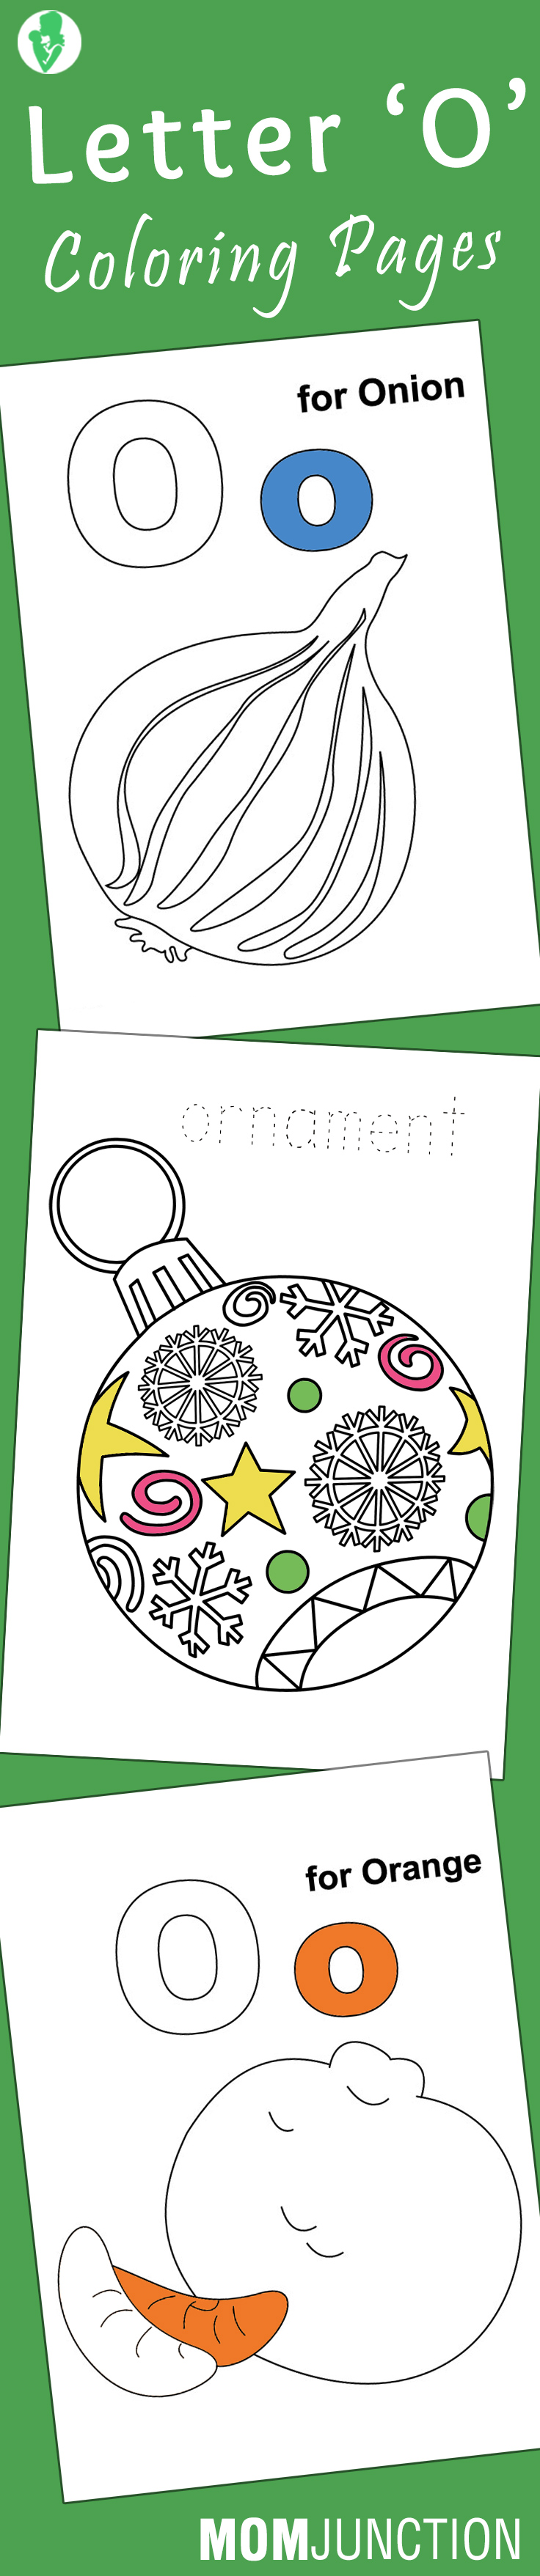 top 10 letter �o coloring pages your toddler will love to